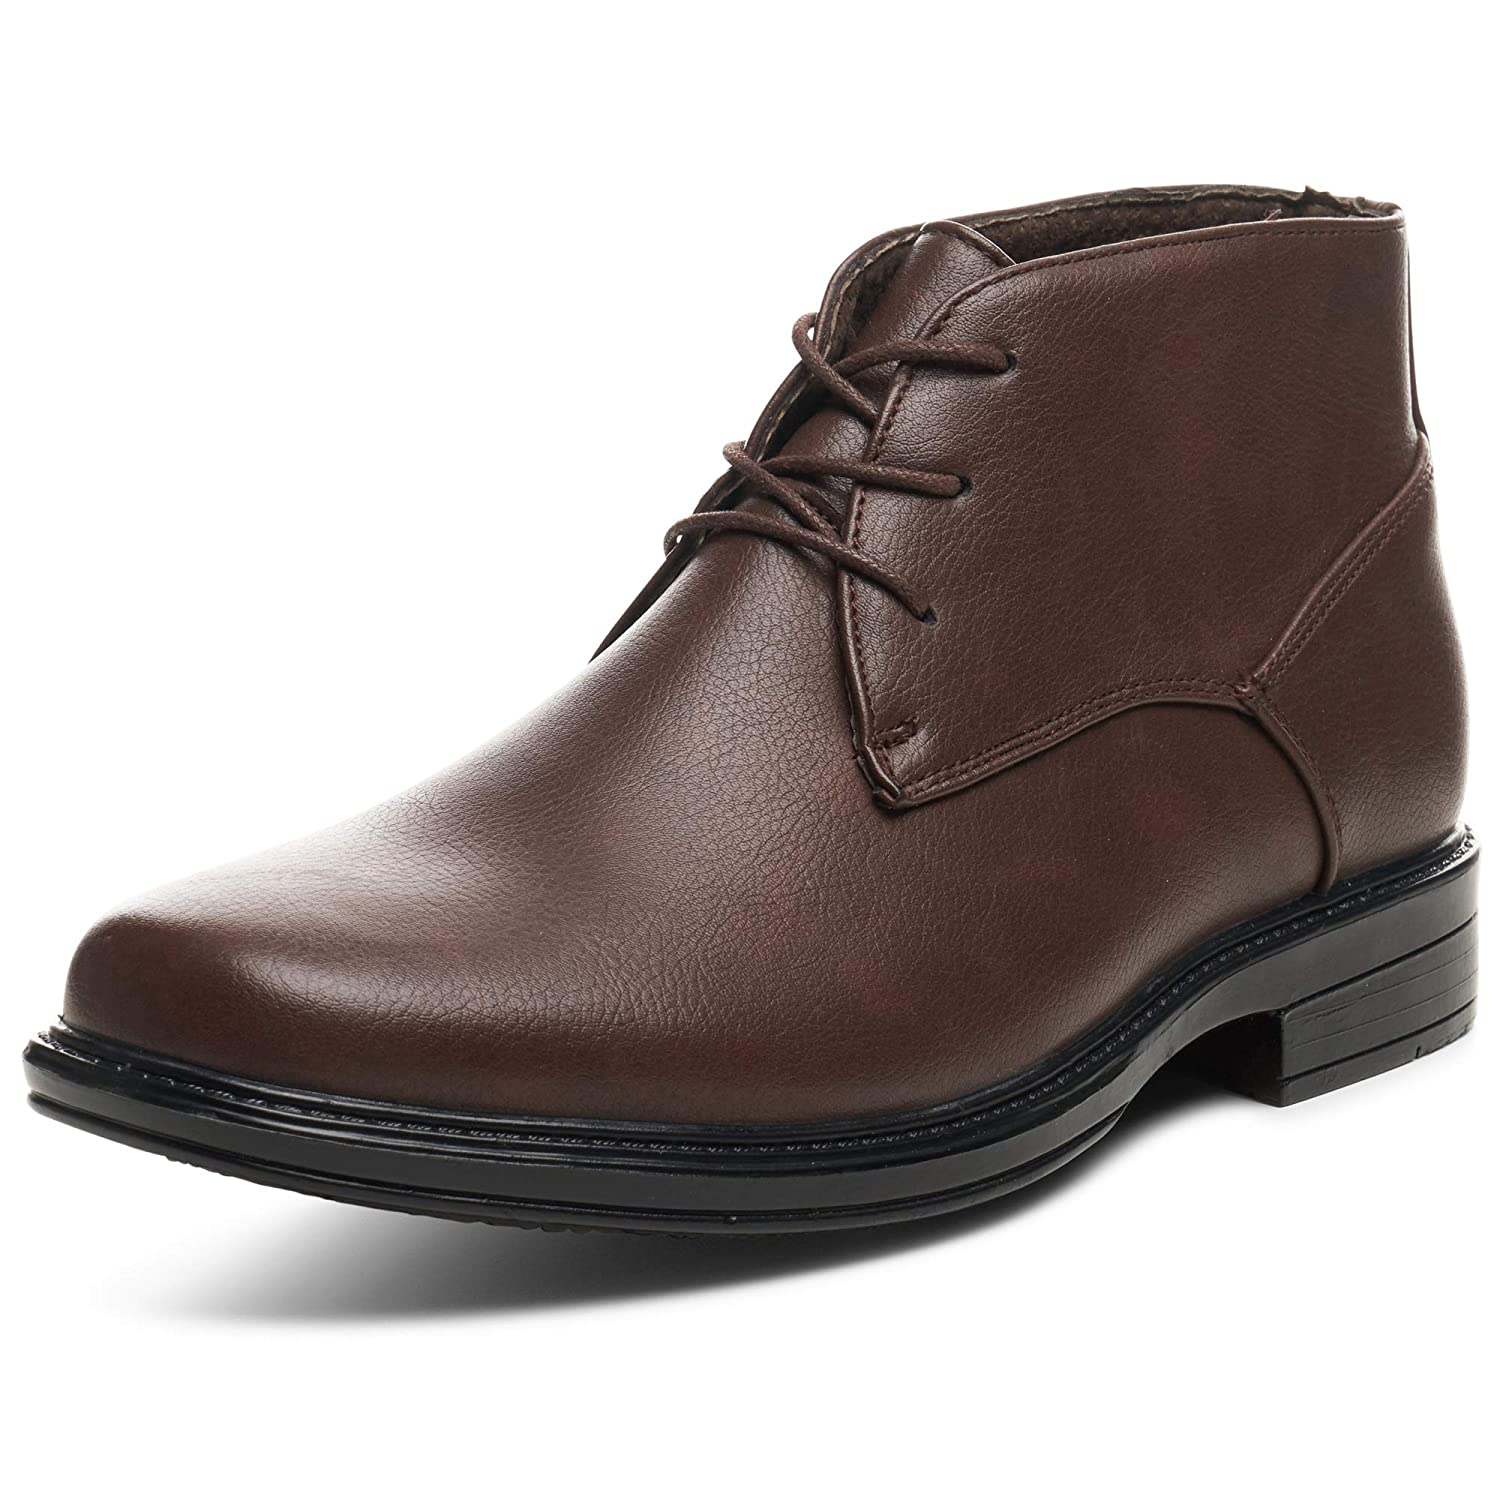 alpine swiss Men's Leather Lined Dressy Ankle Boots By Alpine Swiss